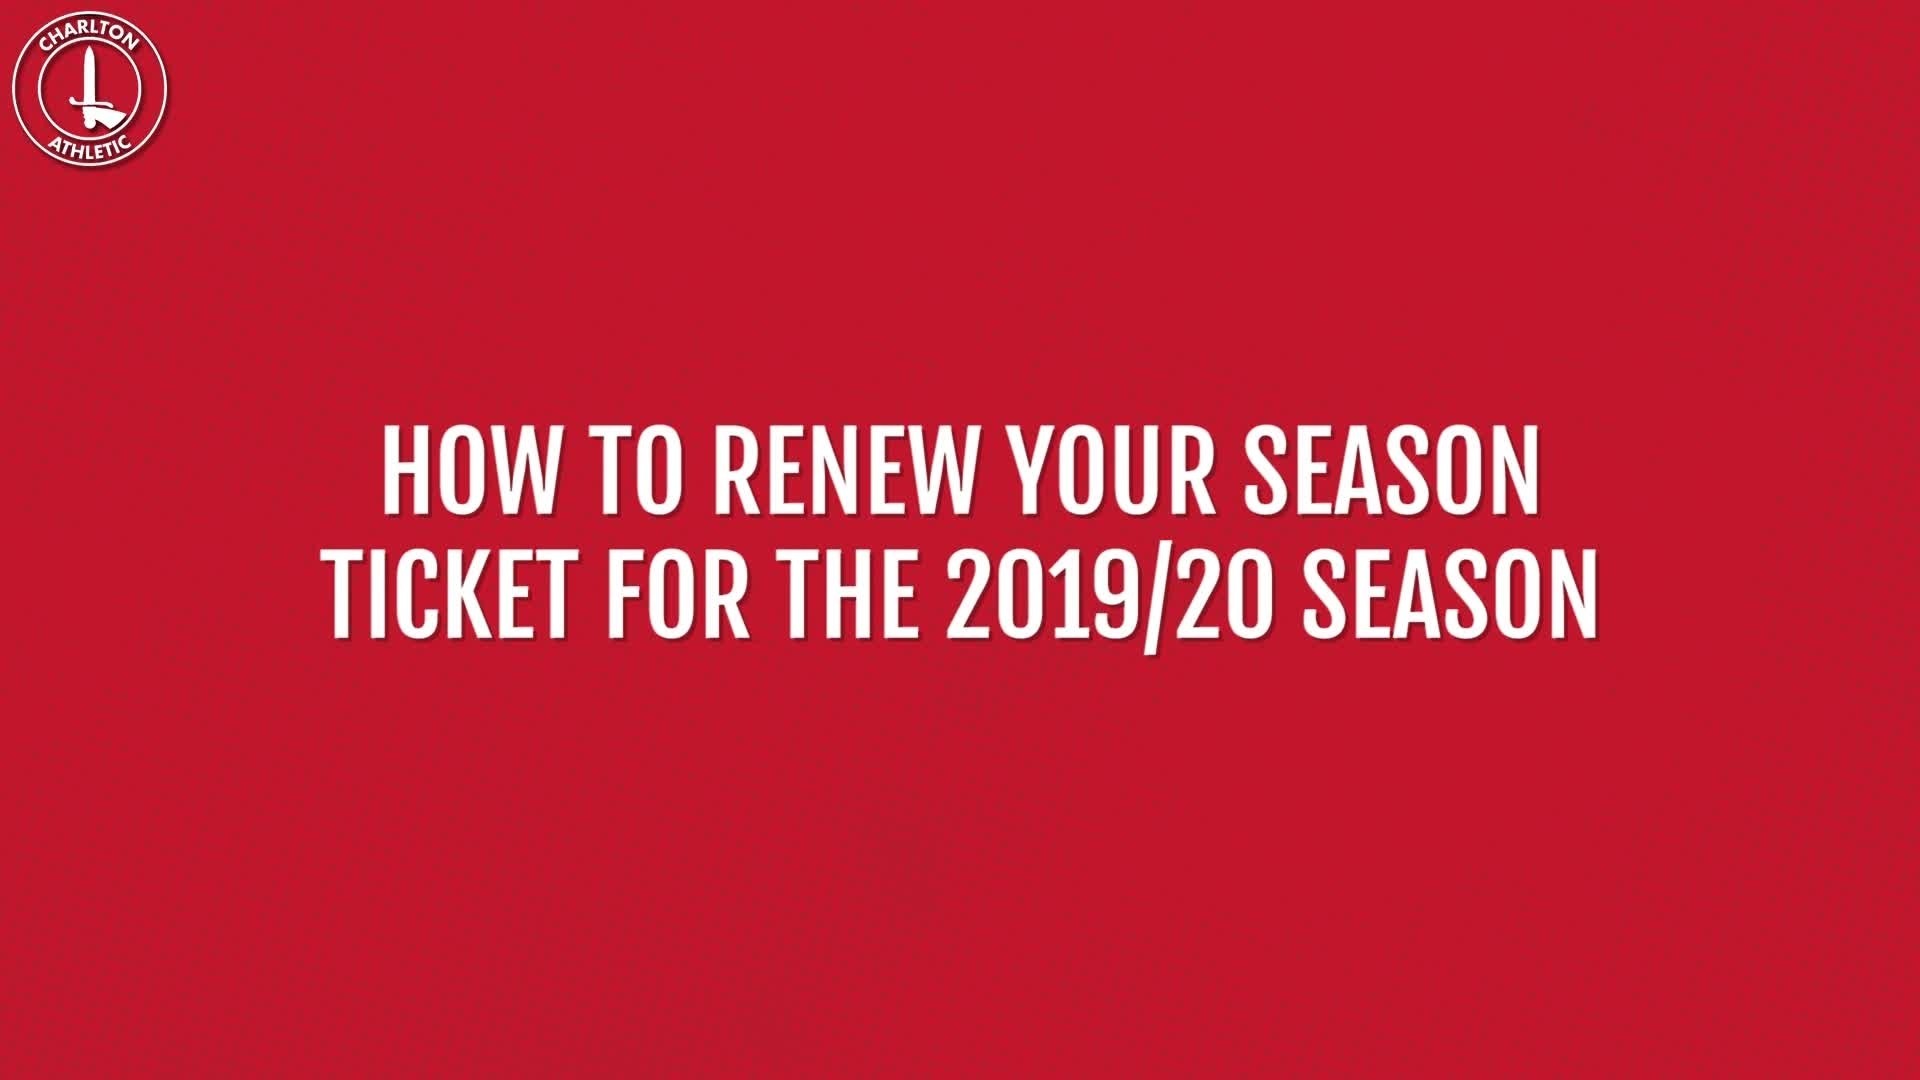 How to renew your season ticket for 2019/20 online